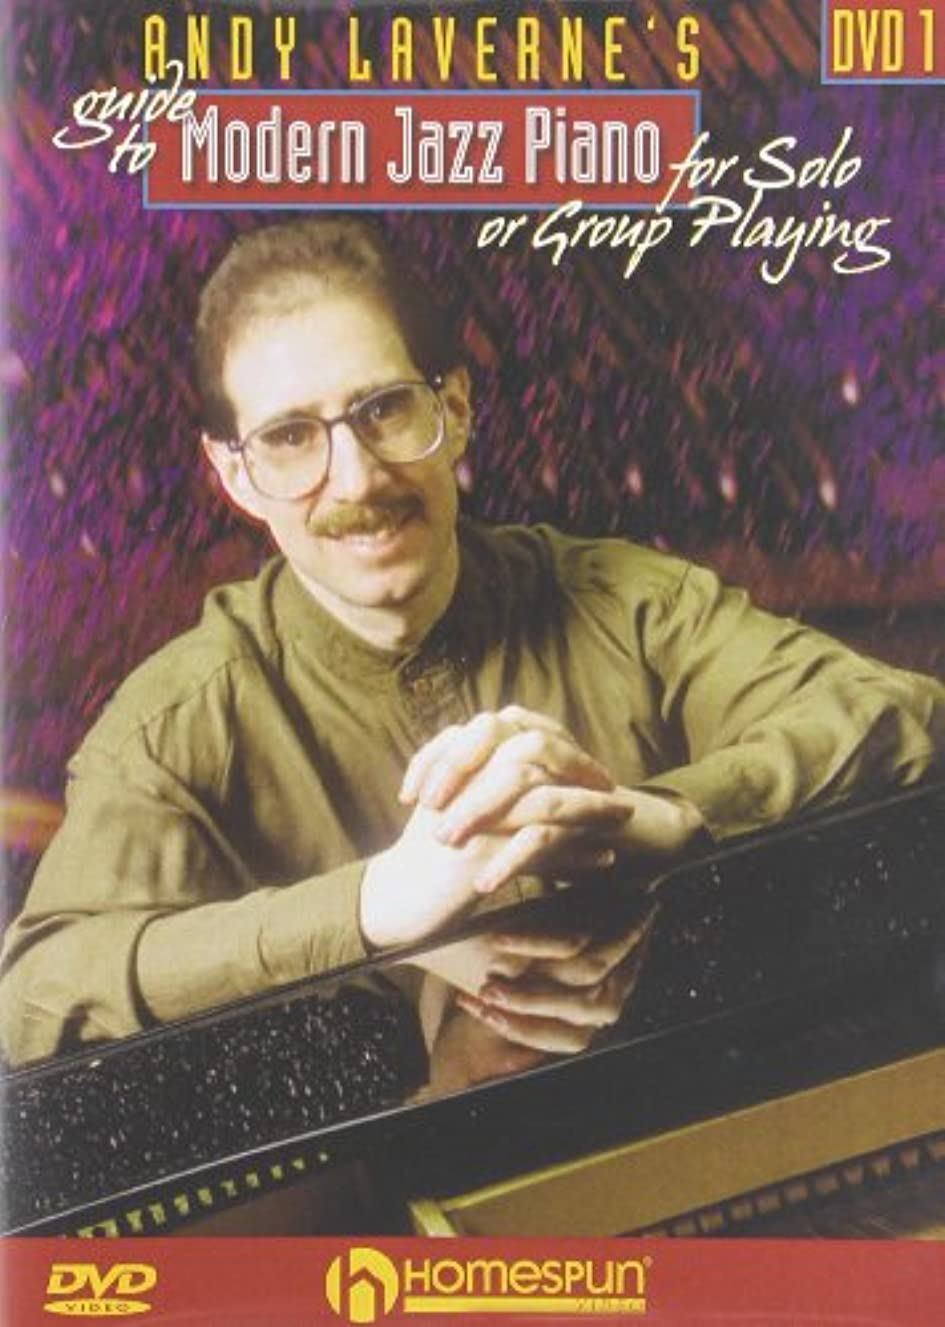 Andy LaVerne's Guide To Modern Jazz Piano-For Solo or Group Playing #1